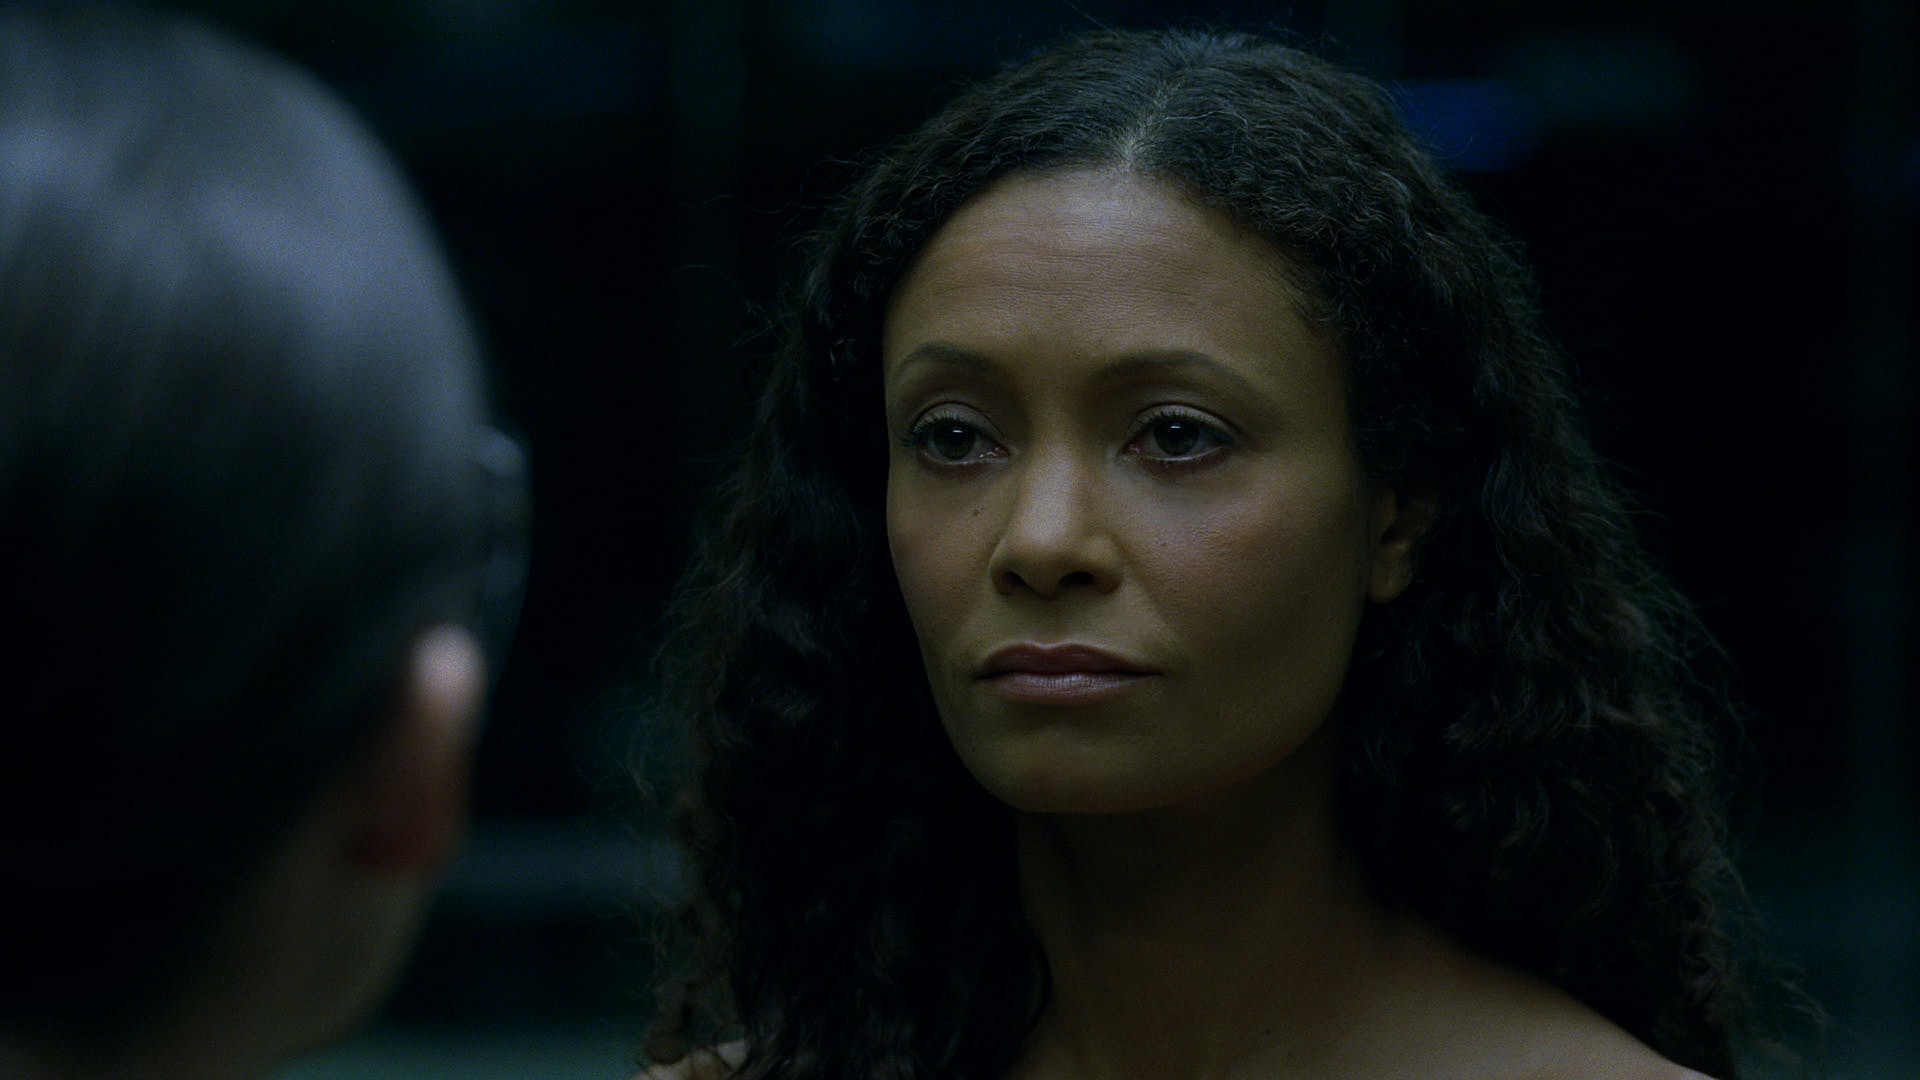 Westworld Episode 2 Released Early by HBO!